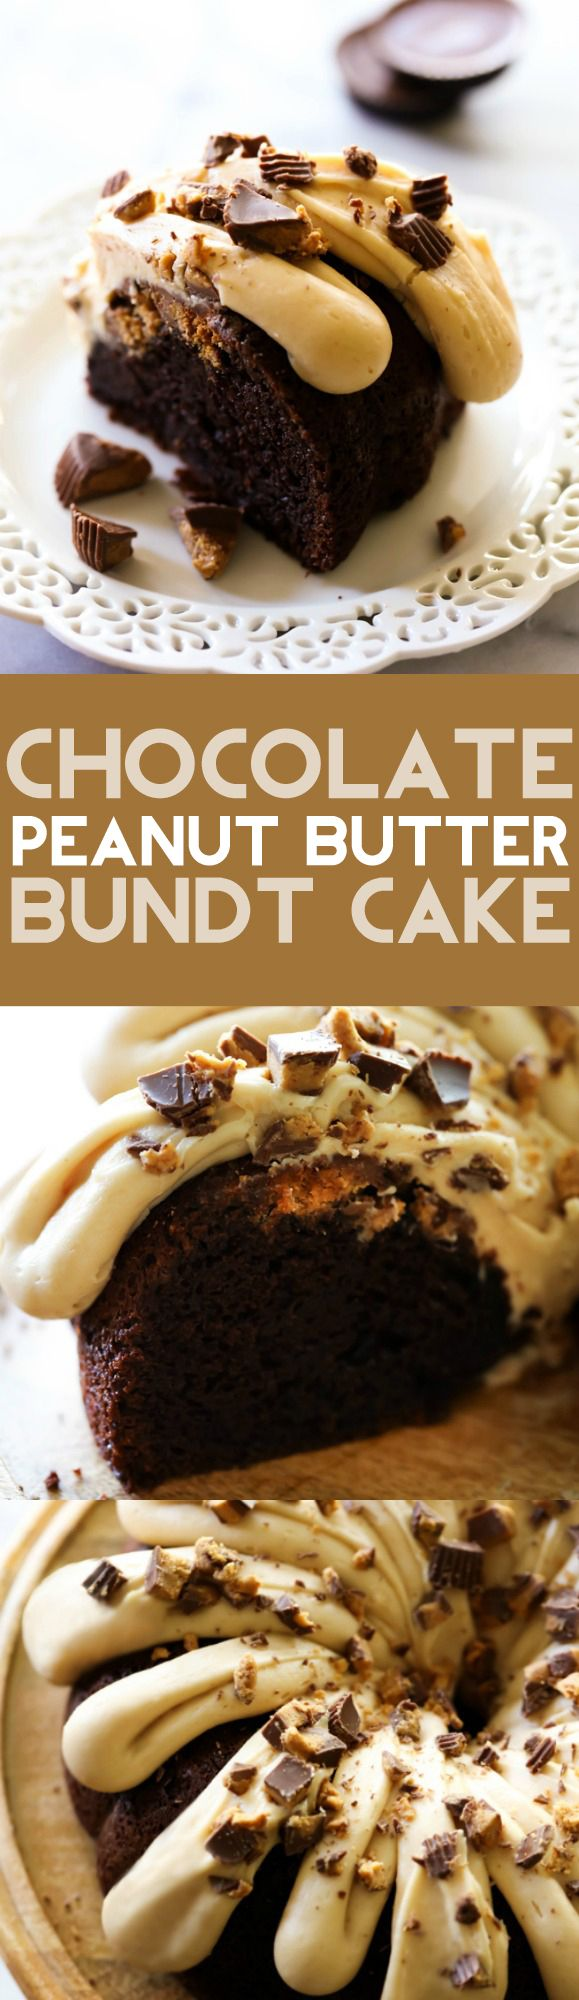 This Chocolate Peanut Butter Bundt Cake is super moist and delicious ...